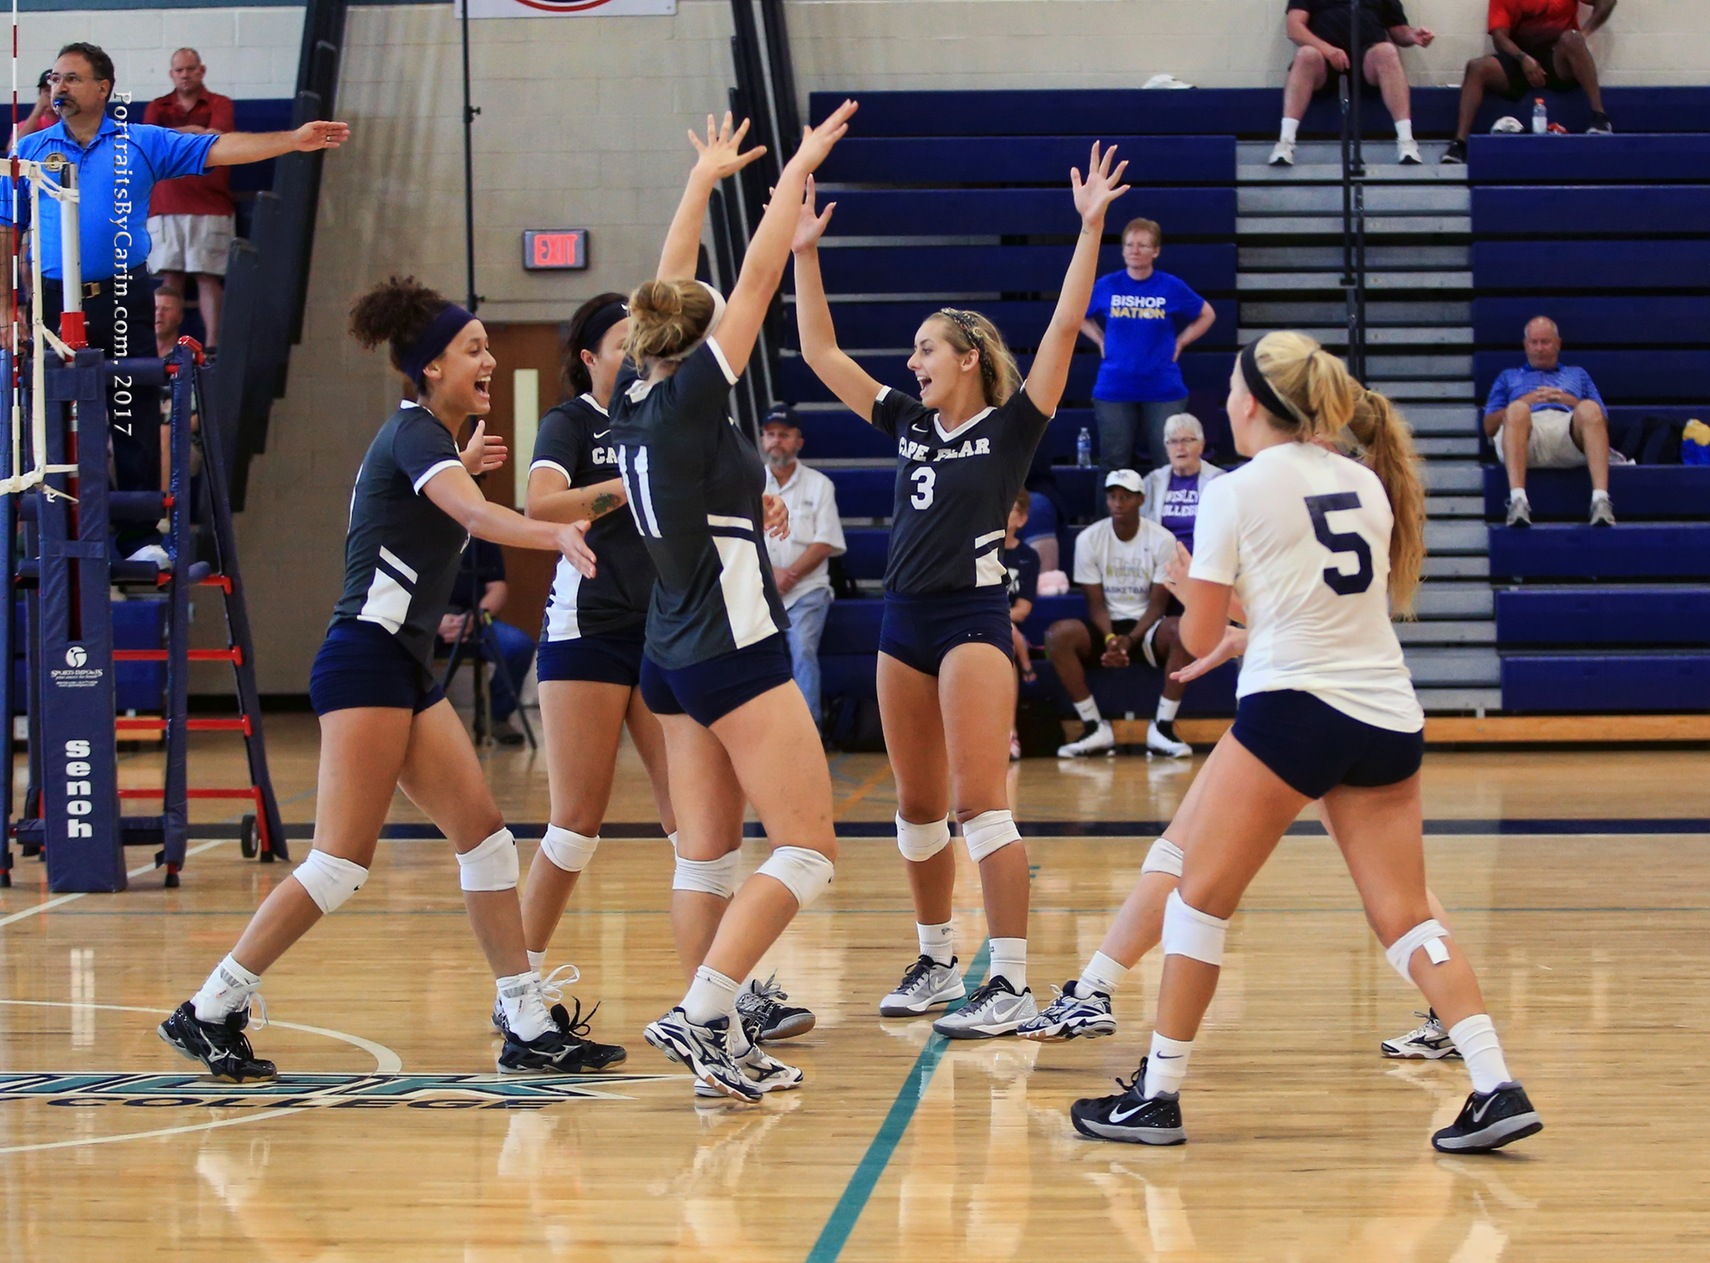 Volleyball Wins Second Match of Weekend